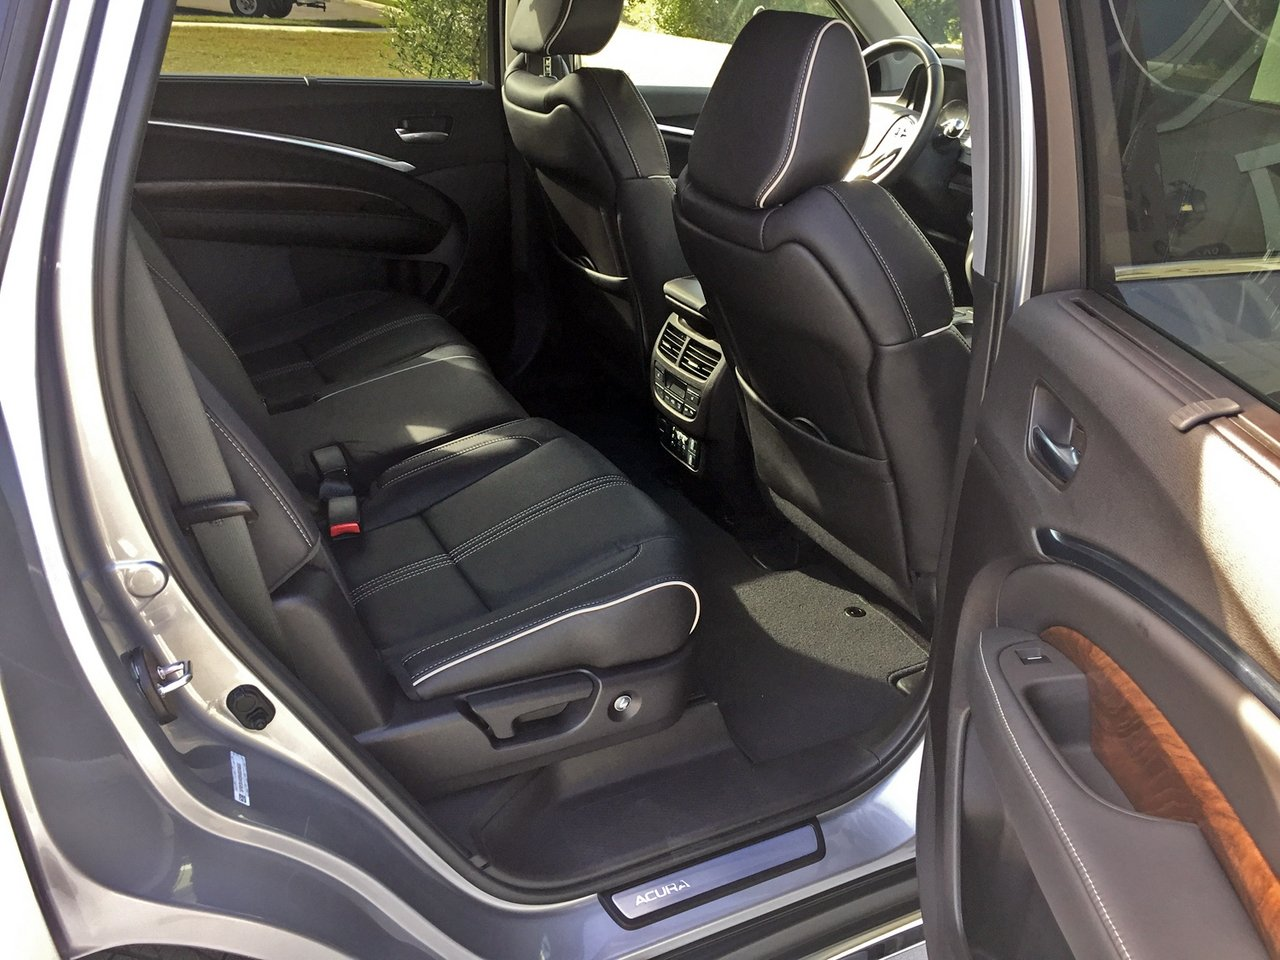 2017 acura mdx quick look rear seats picture 698767 car news top speed. Black Bedroom Furniture Sets. Home Design Ideas